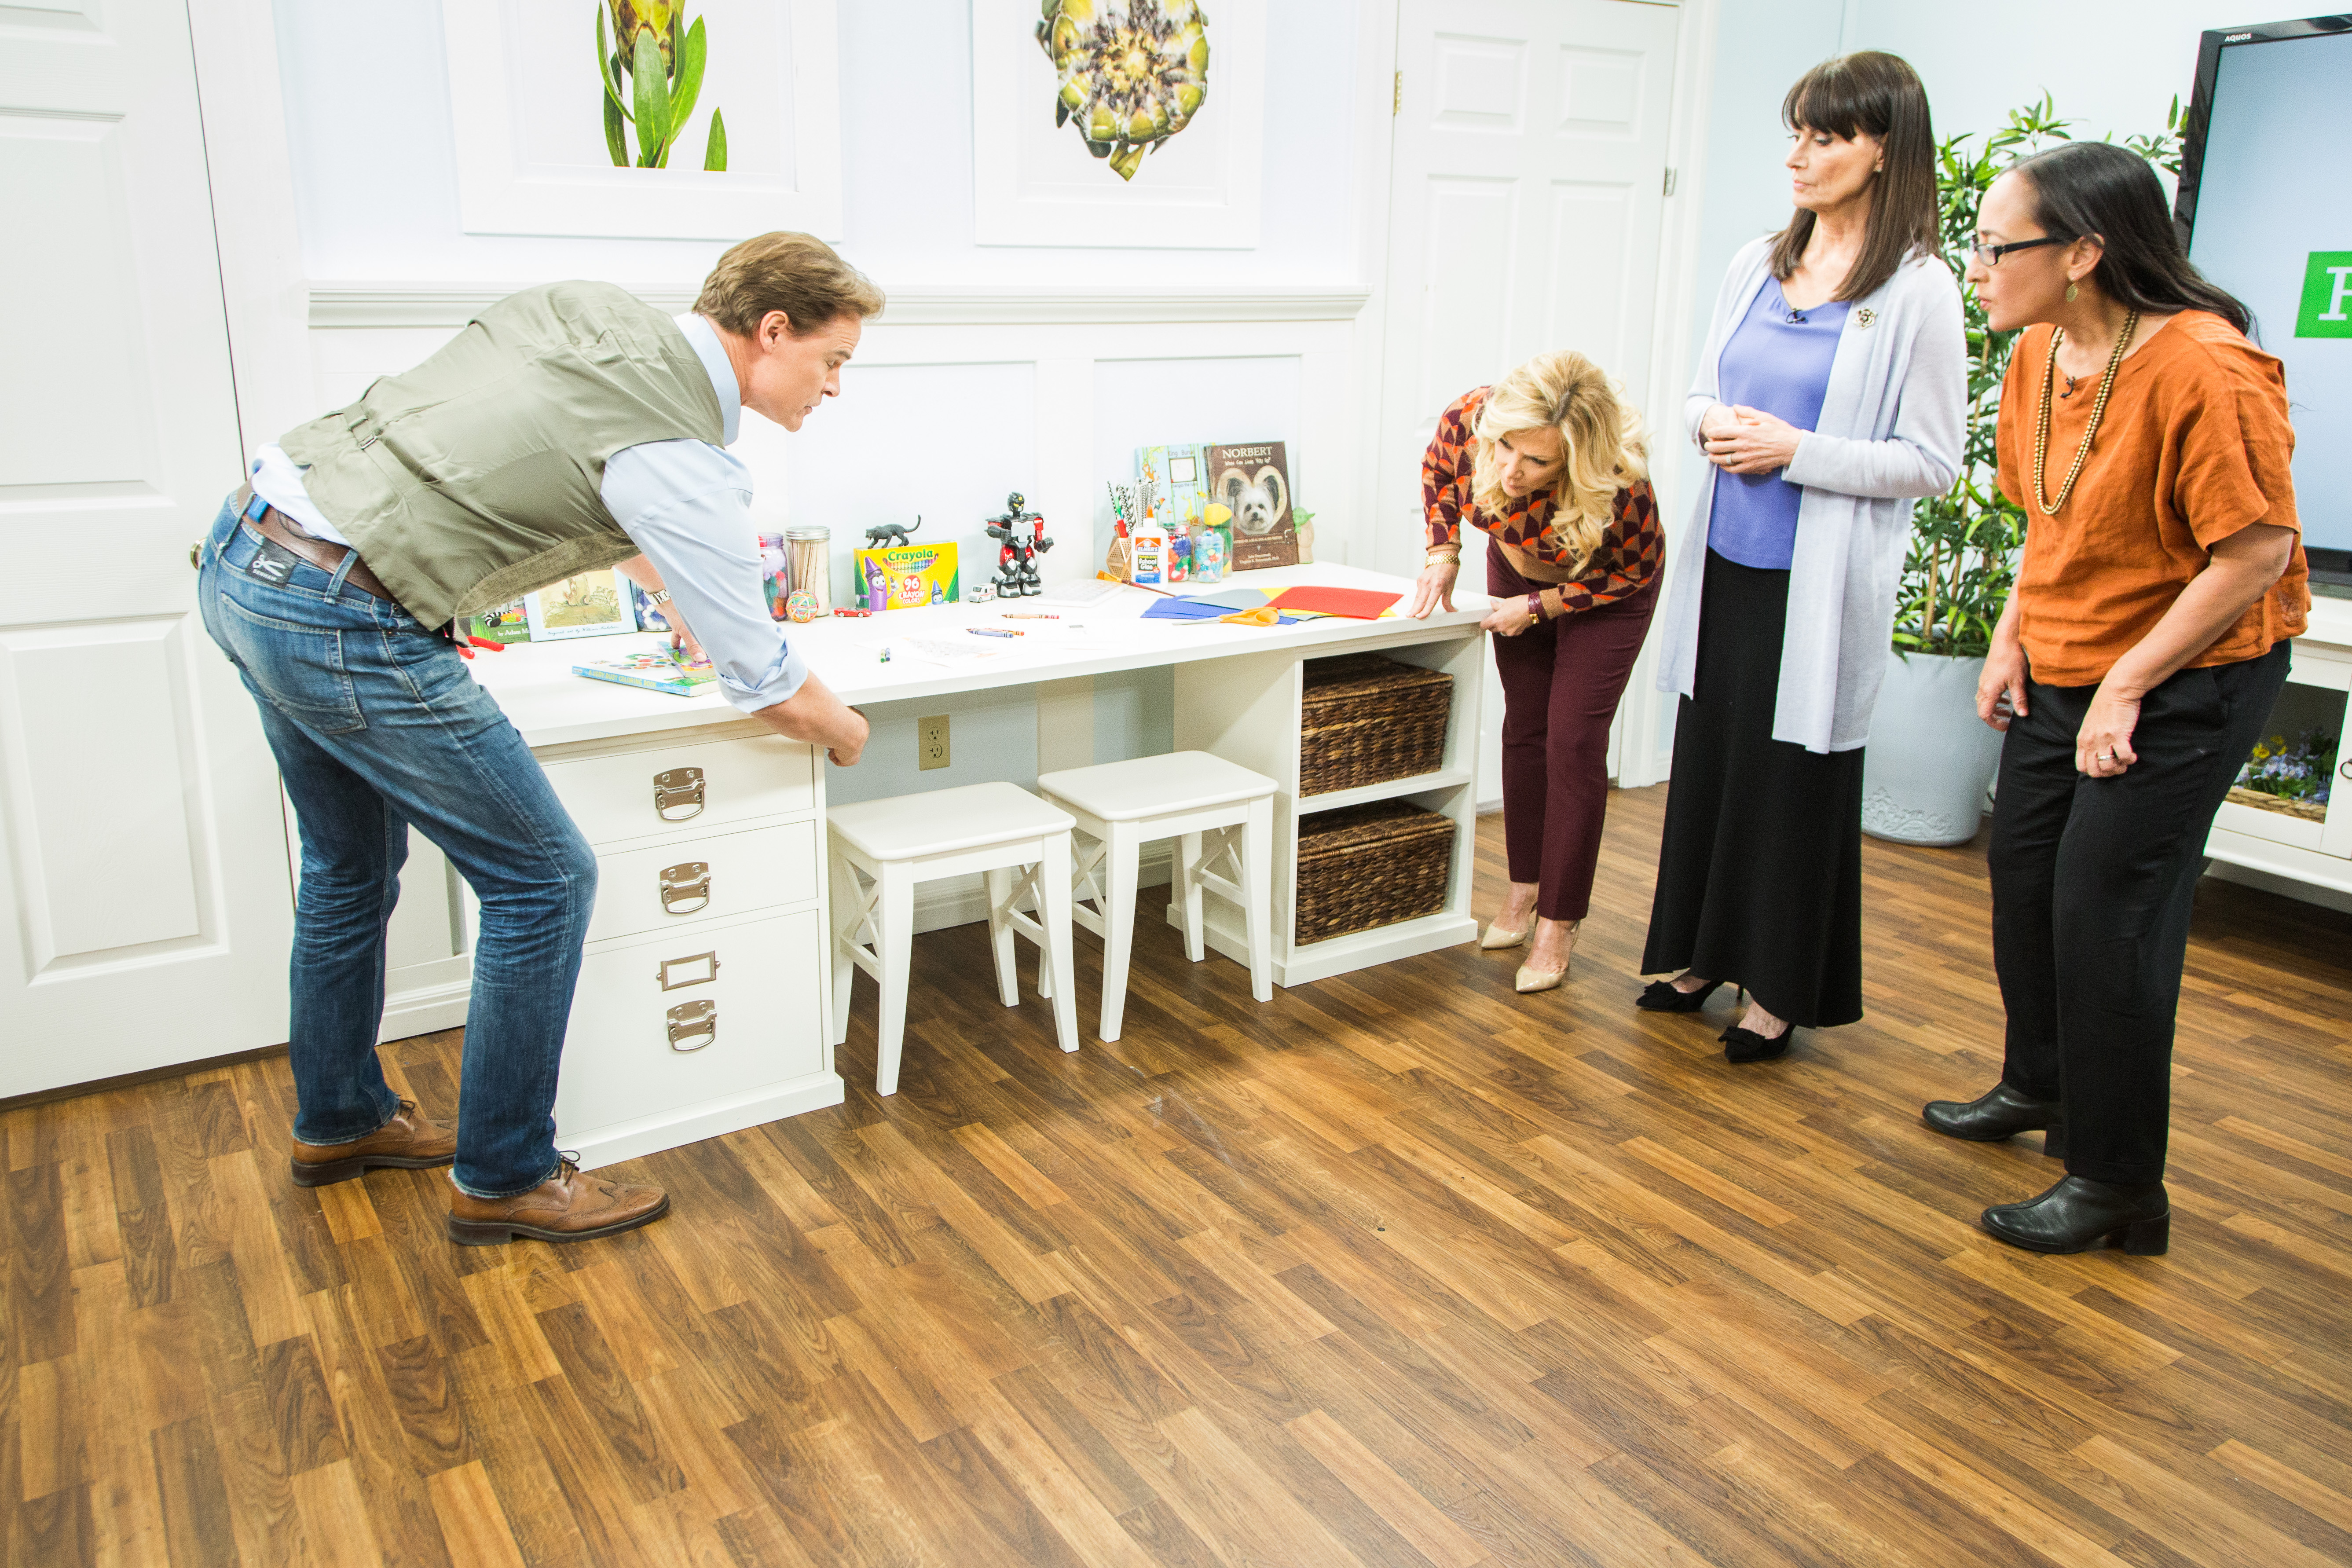 Diy Kids Desk For Two Home Family Video Hallmark Channel